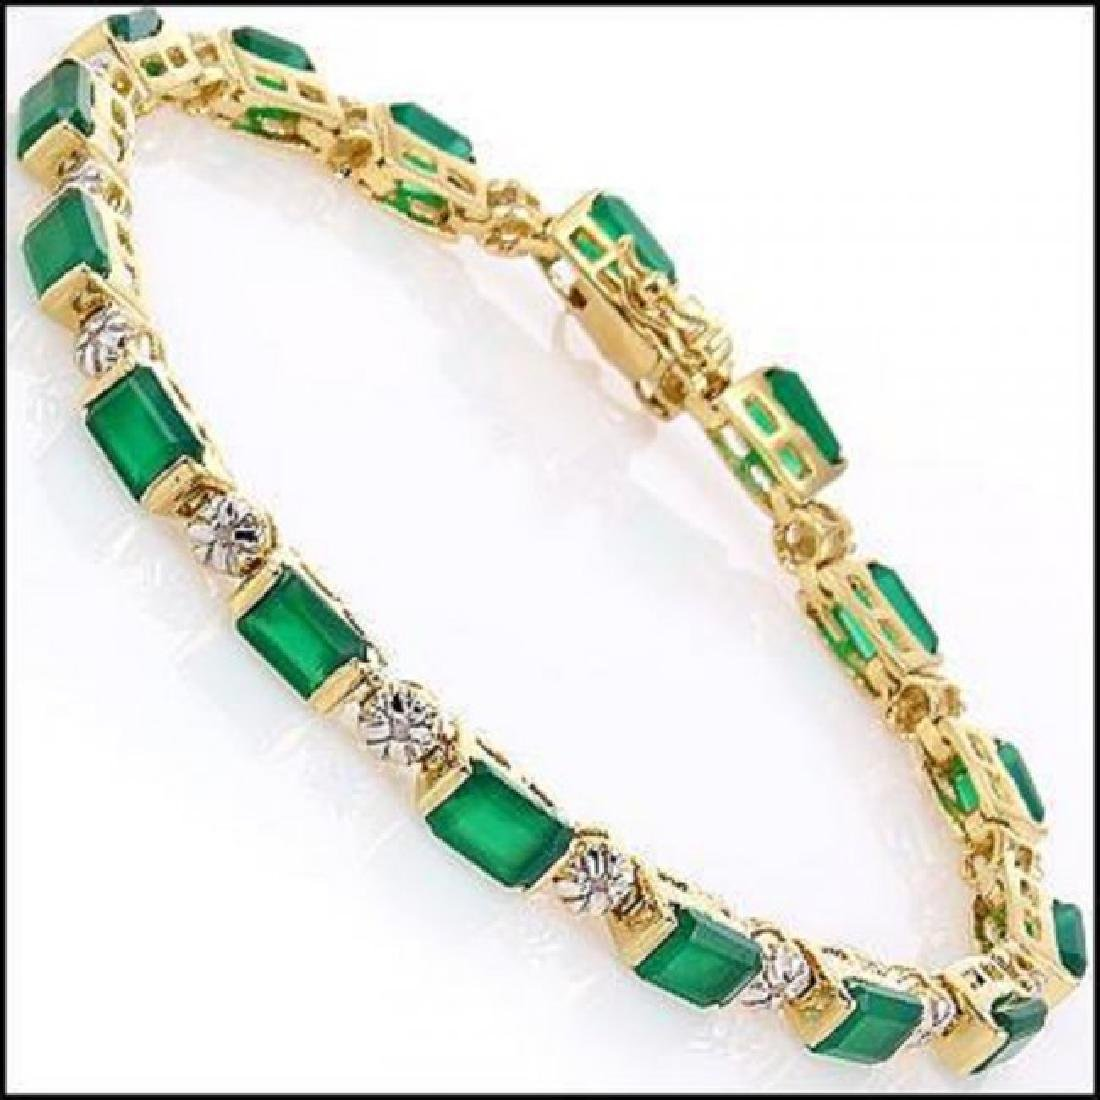 9.79 CT Green Agate & Diamond Designer Bracelet $1405